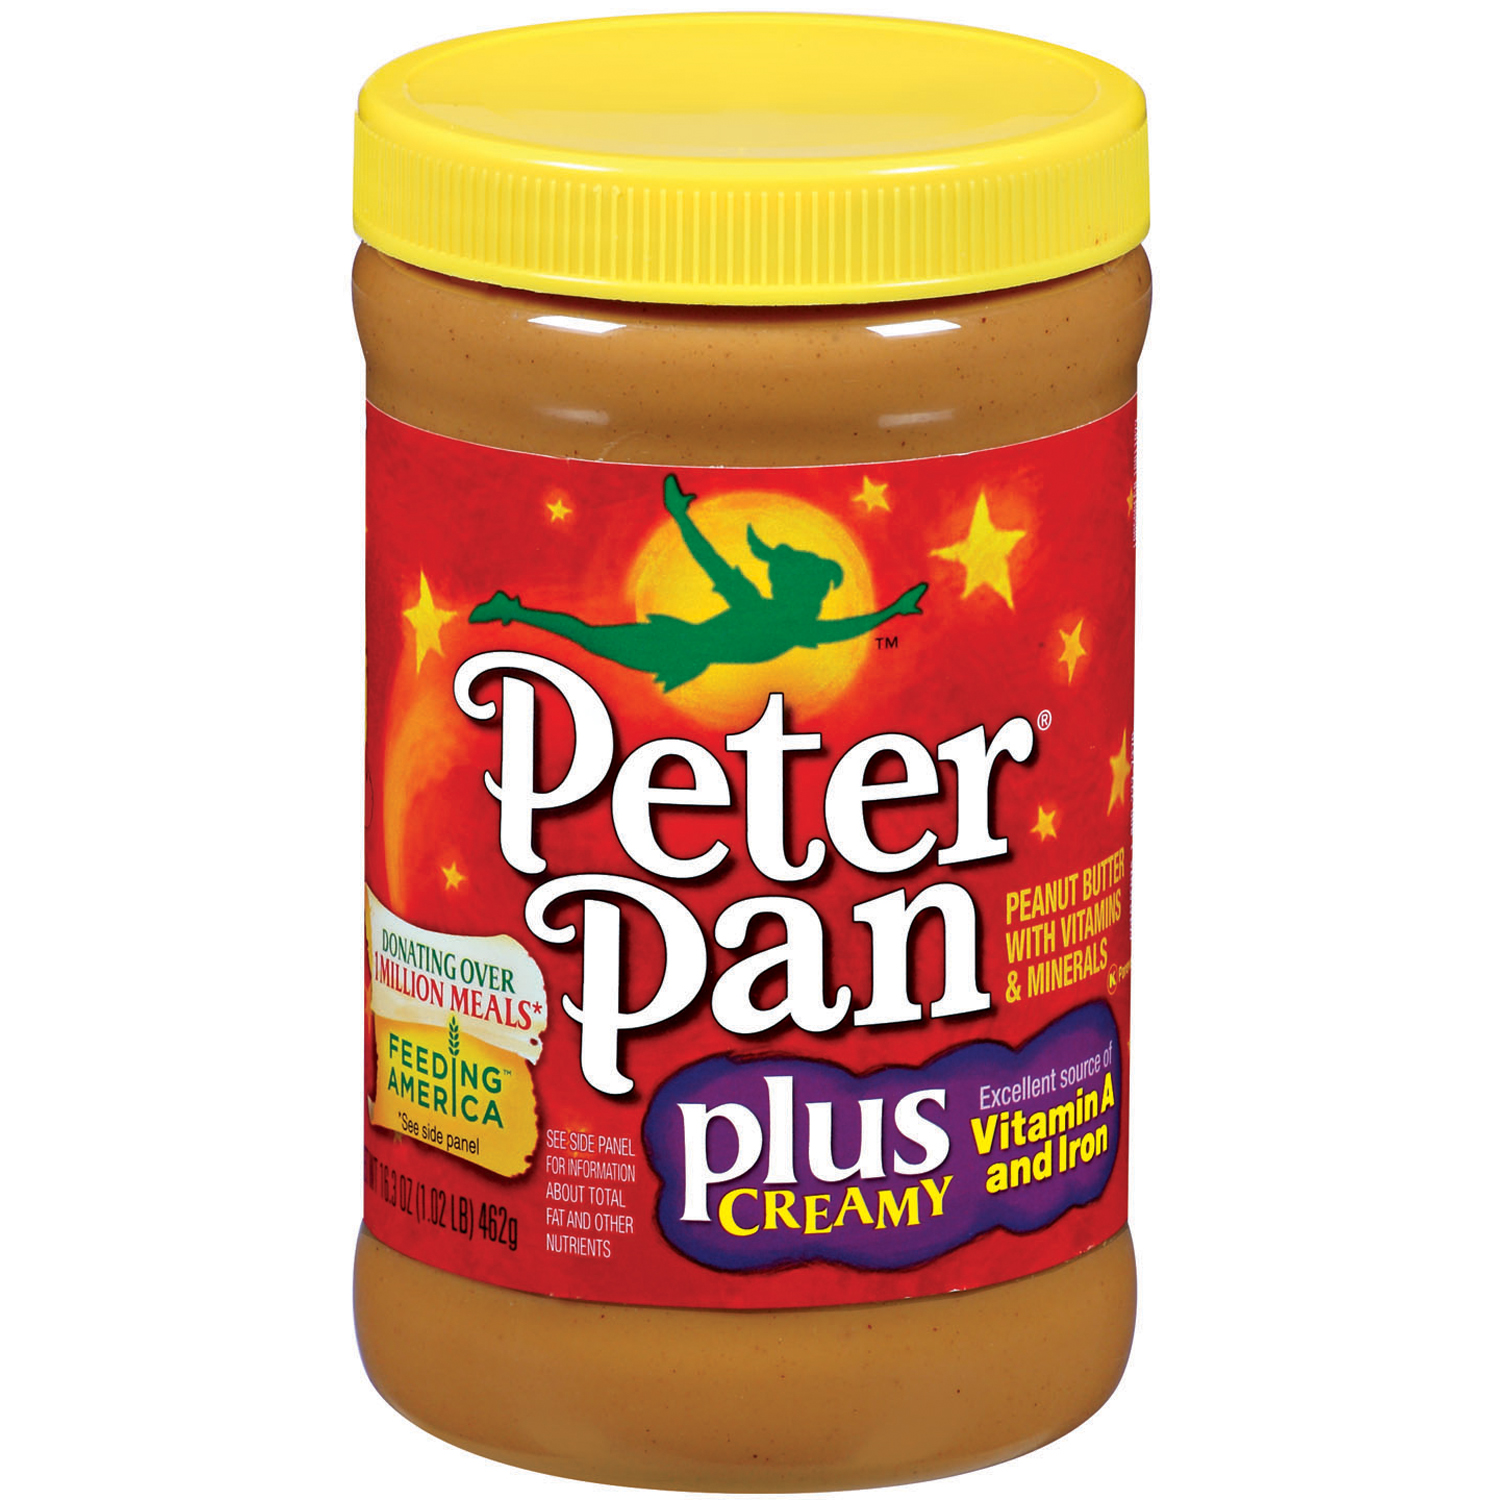 Peter Pan Plus Creamy, 16.3oz